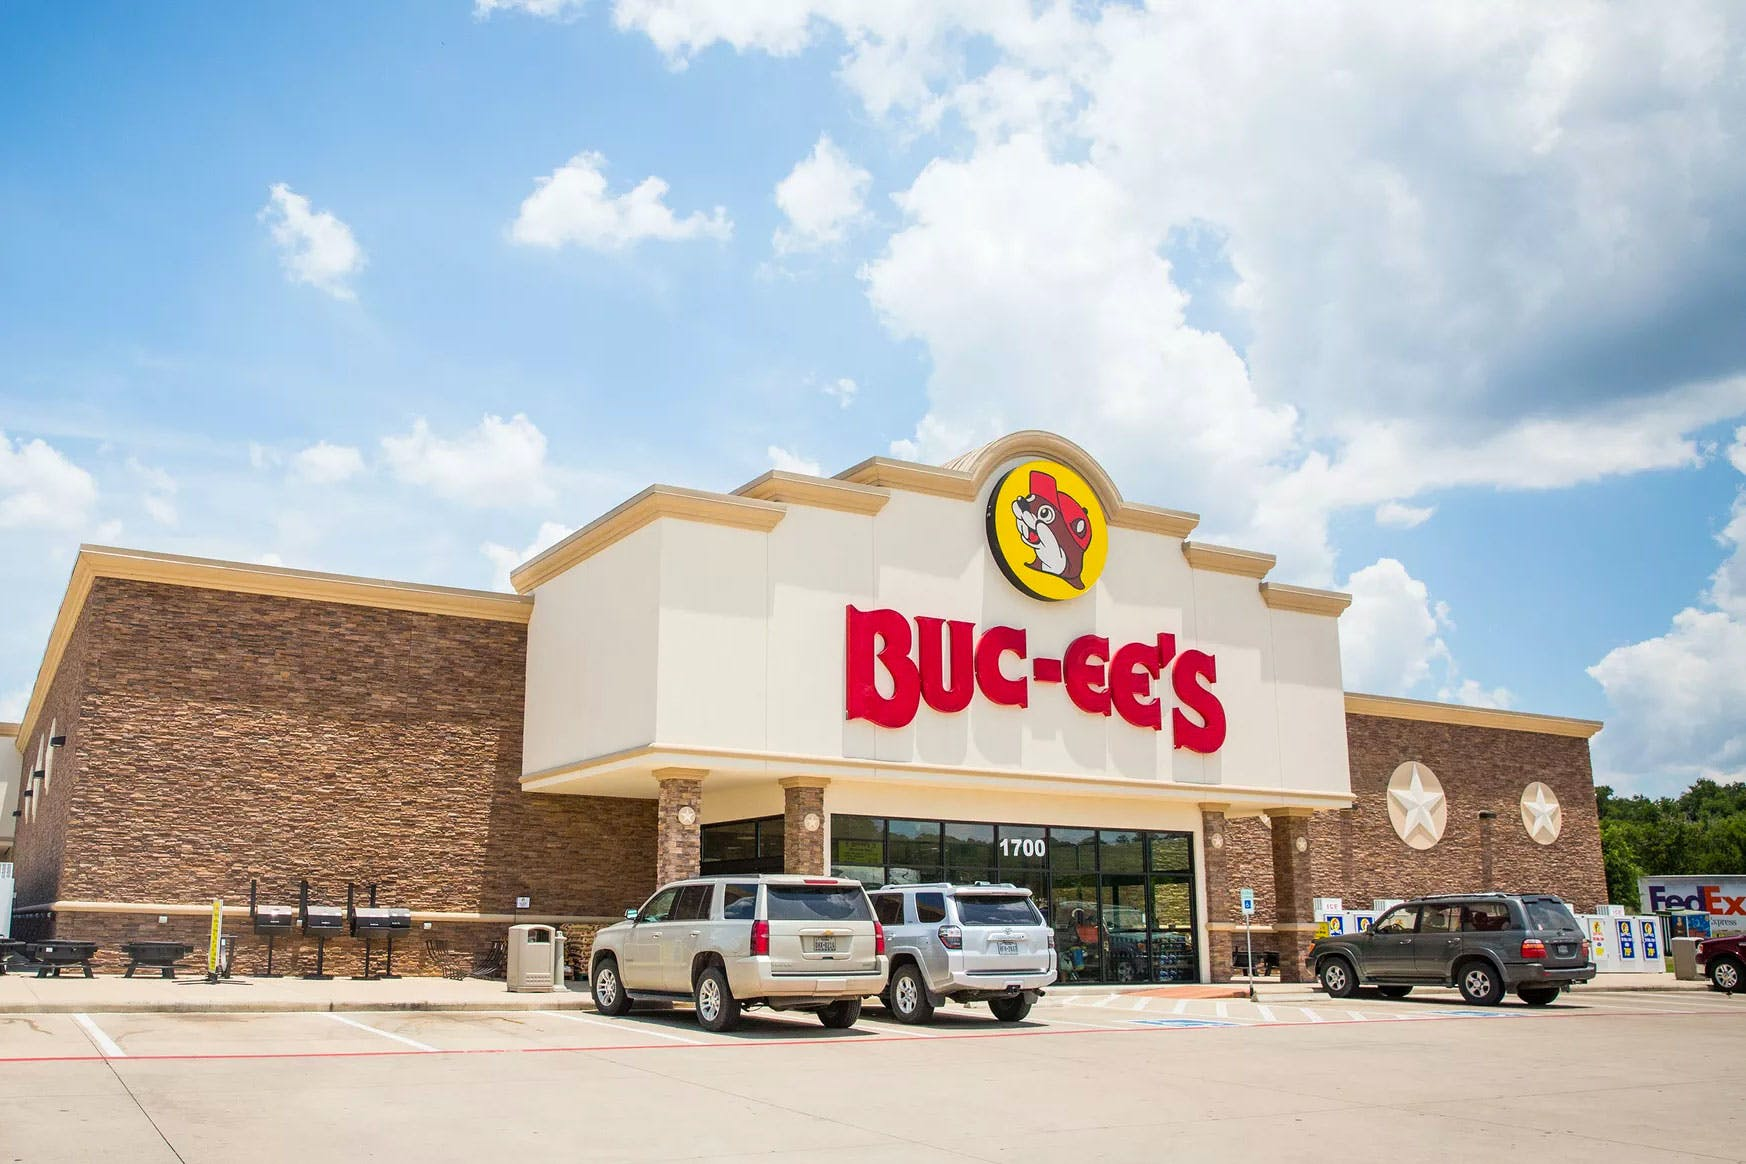 best-place-to-stop-bathrooms-Buc-ees-katy-tx